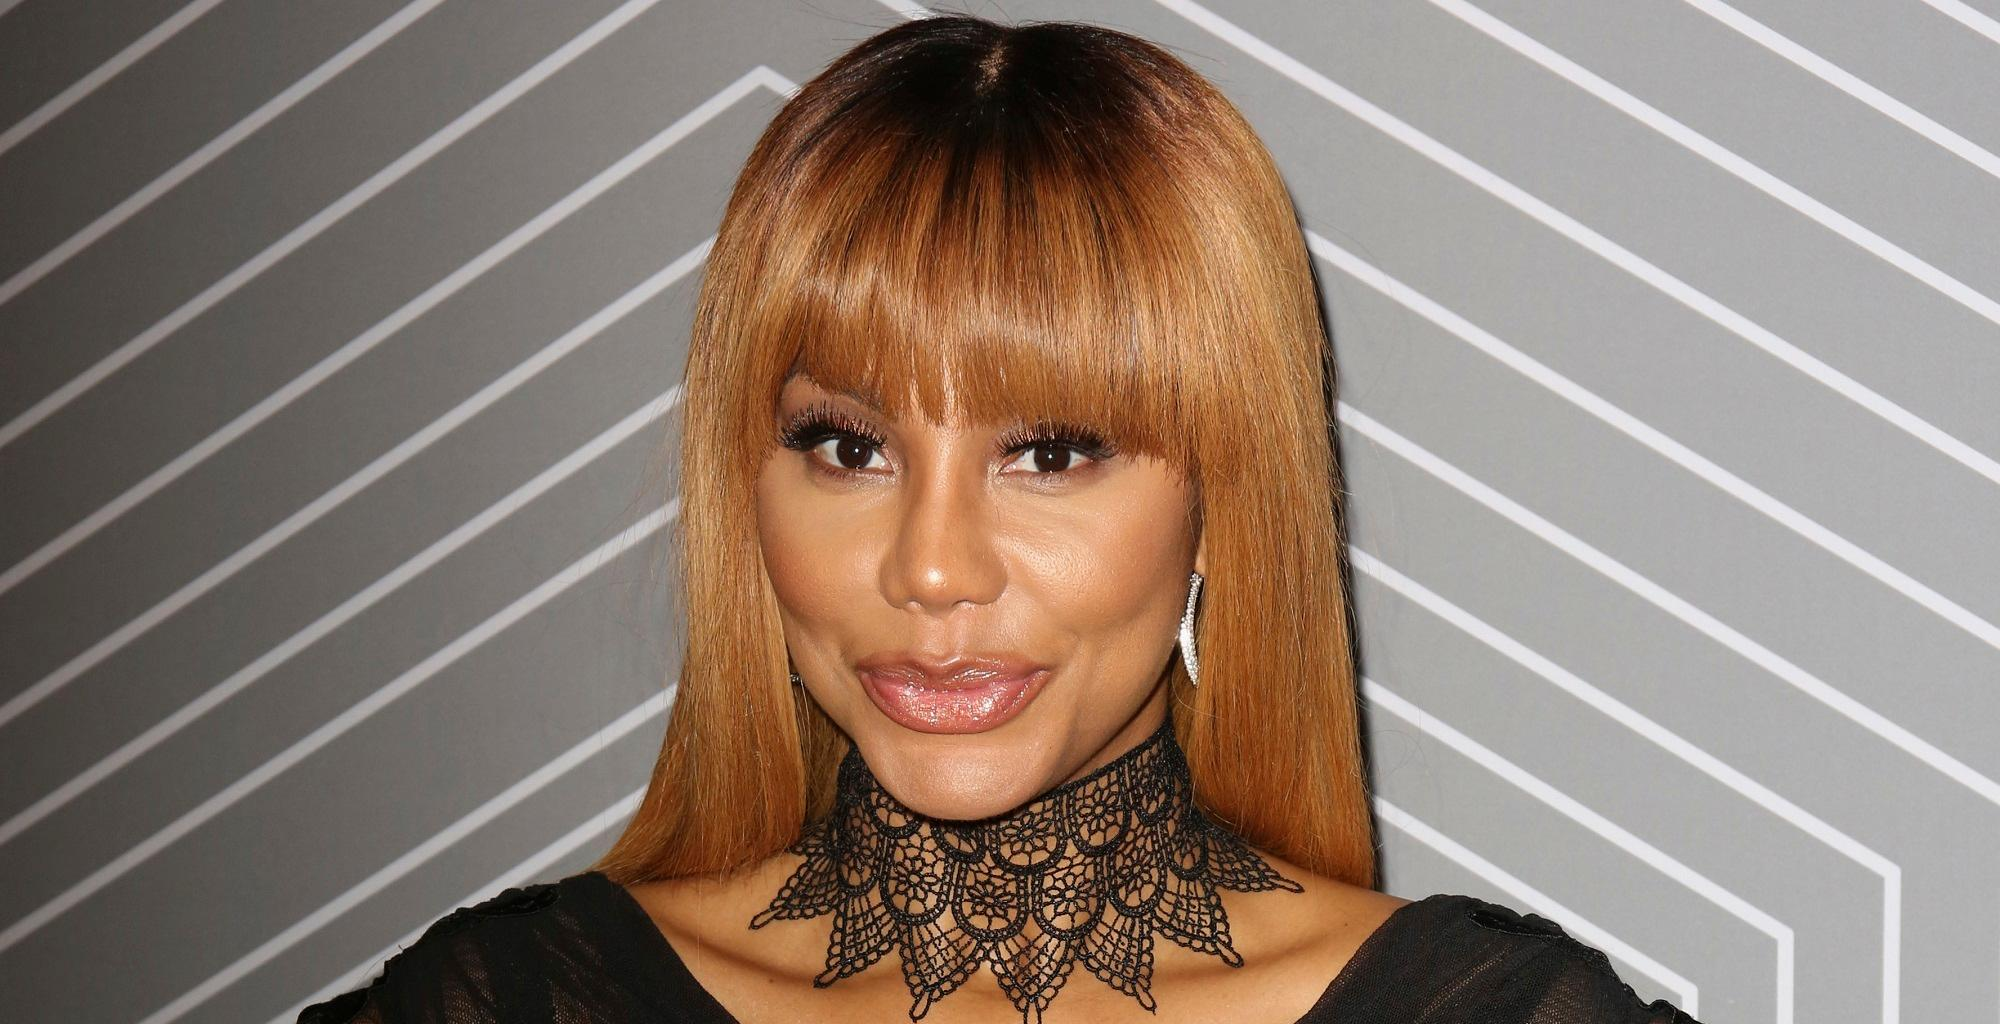 Tamar Braxton Posts A Breathtaking Photo And Shares A Motivational Message - Check Out Her Post Here